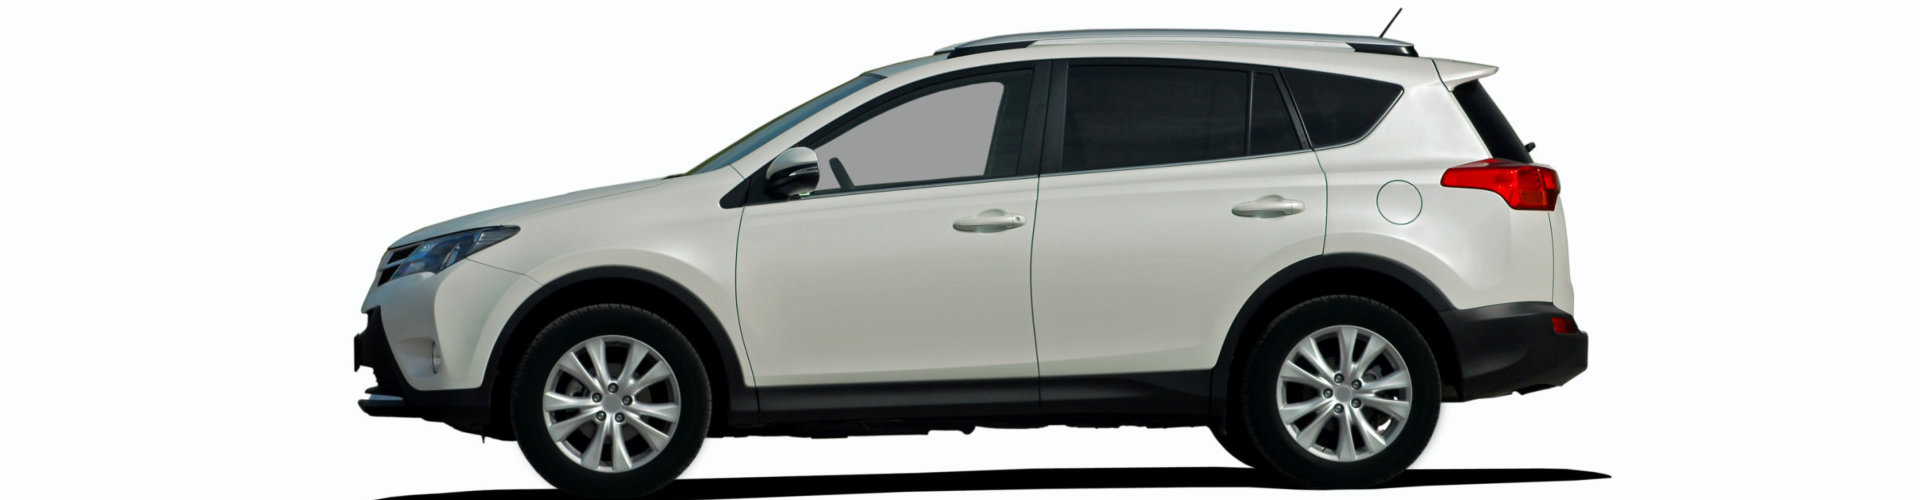 sideview image of a white car